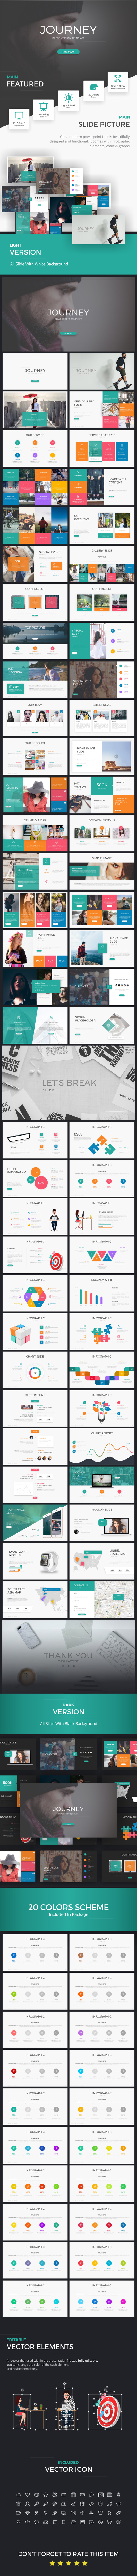 Journey Presentation Template - Business PowerPoint Templates